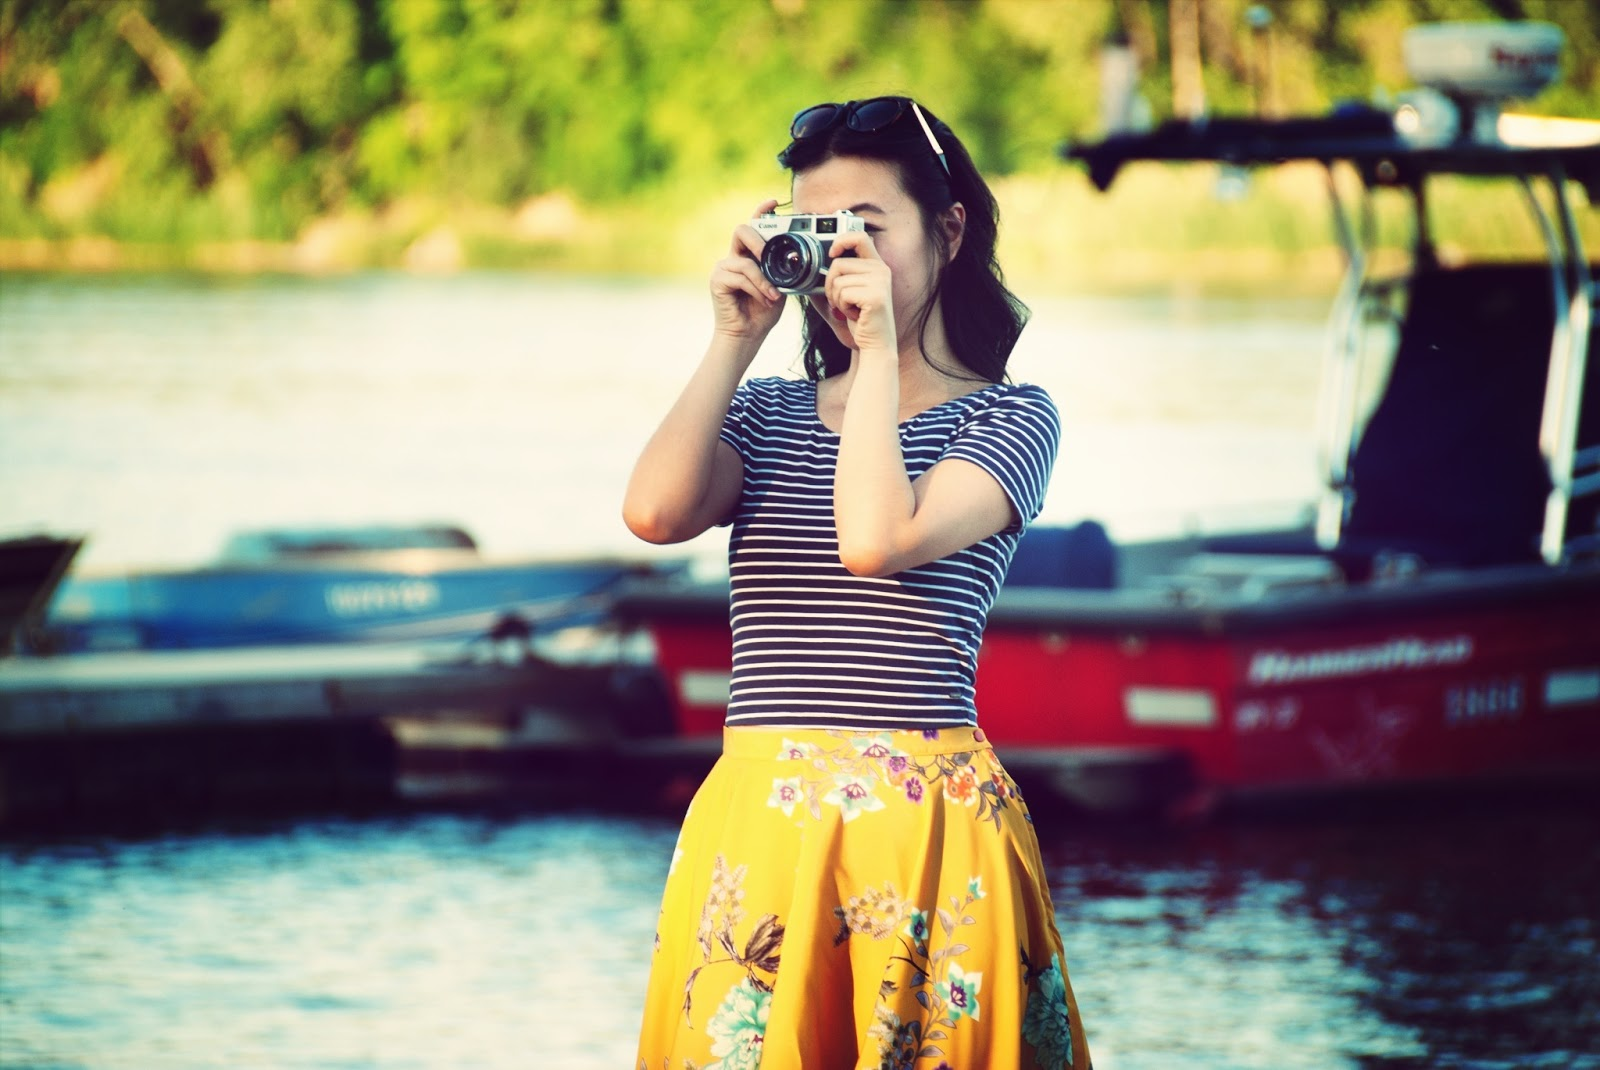 nautical fashion boats camera yellow floral skirt striped crop top girl